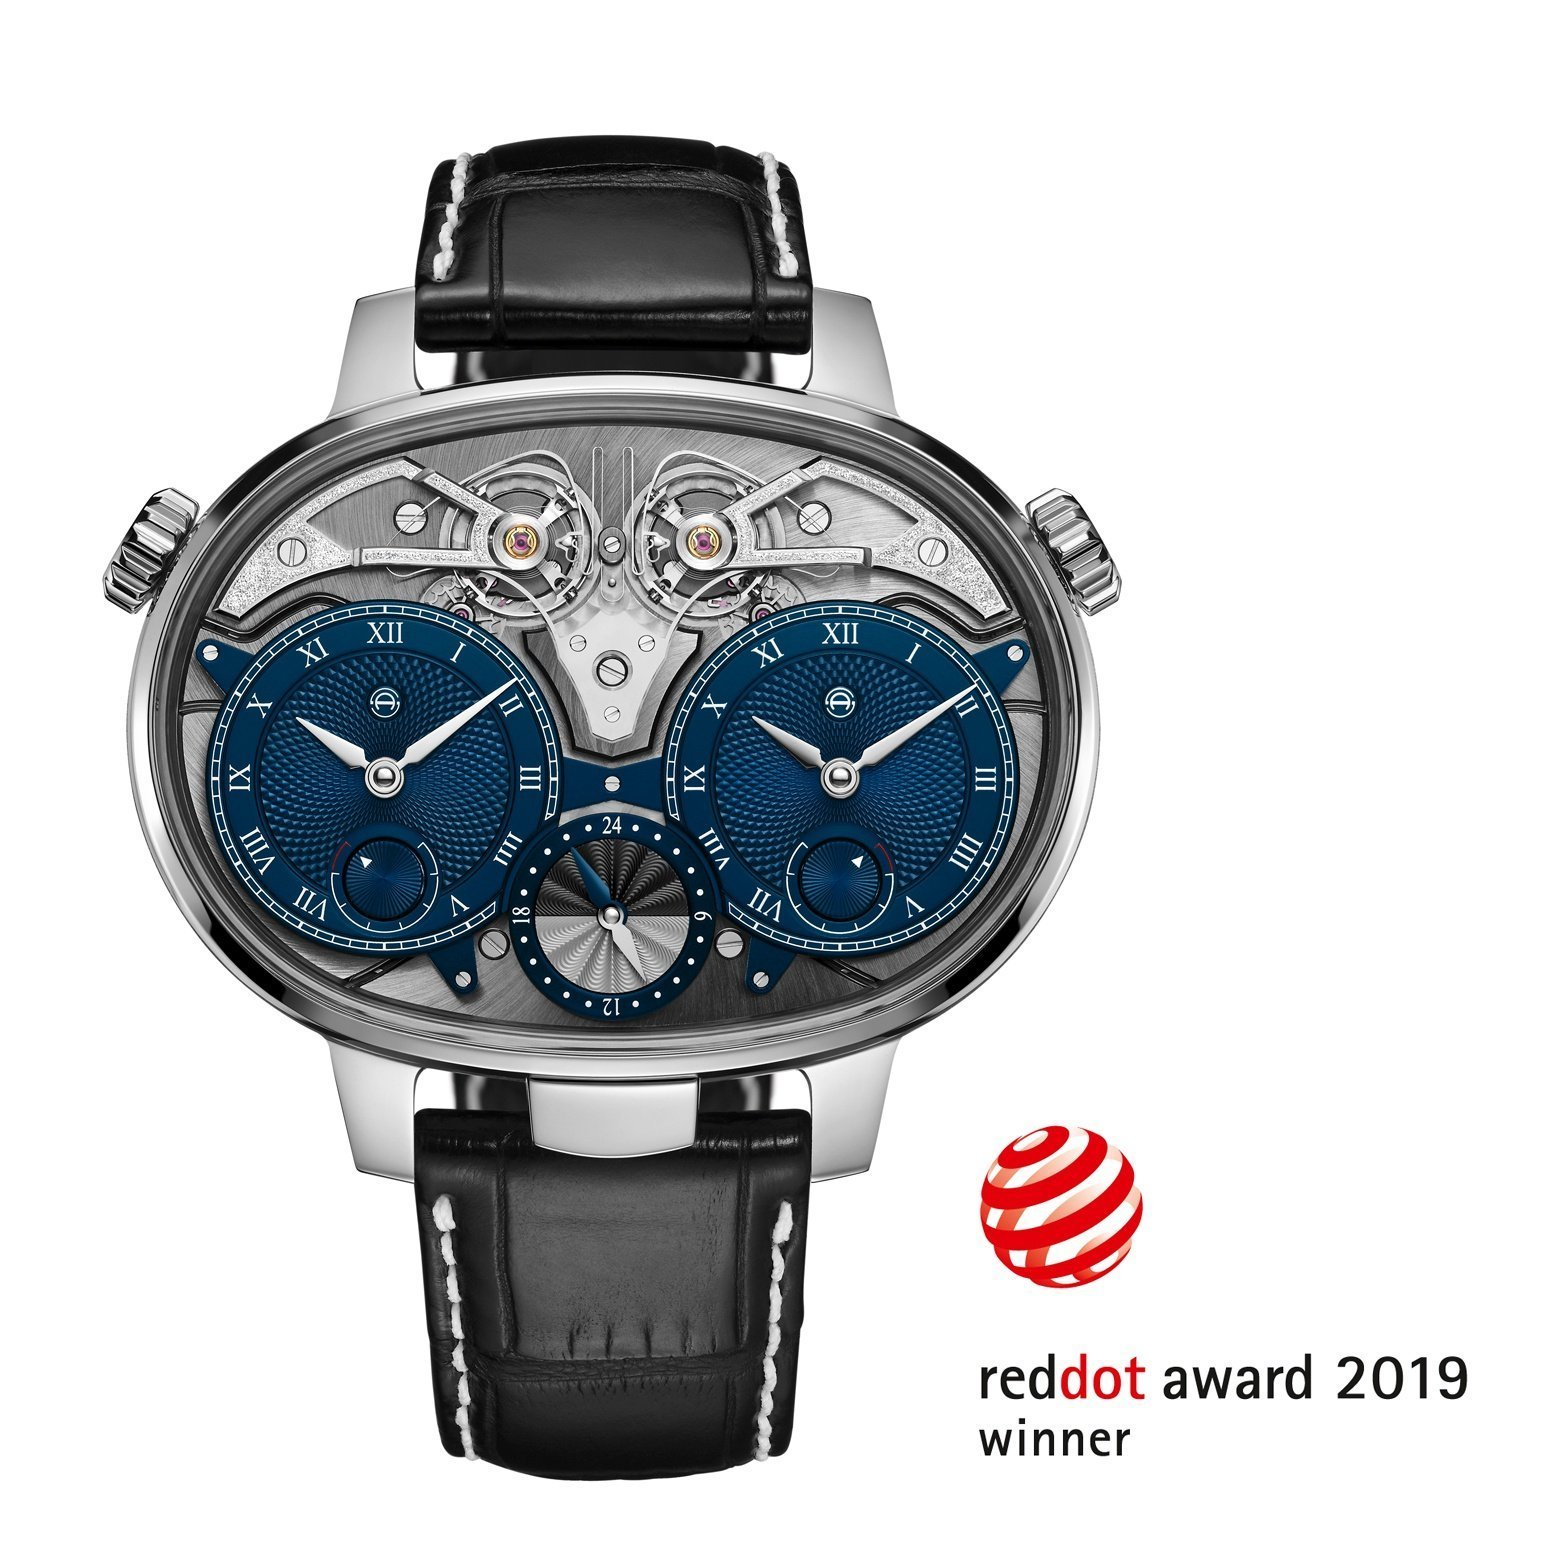 Dual Time Resonance from Armin Strom wins Red Dot Award